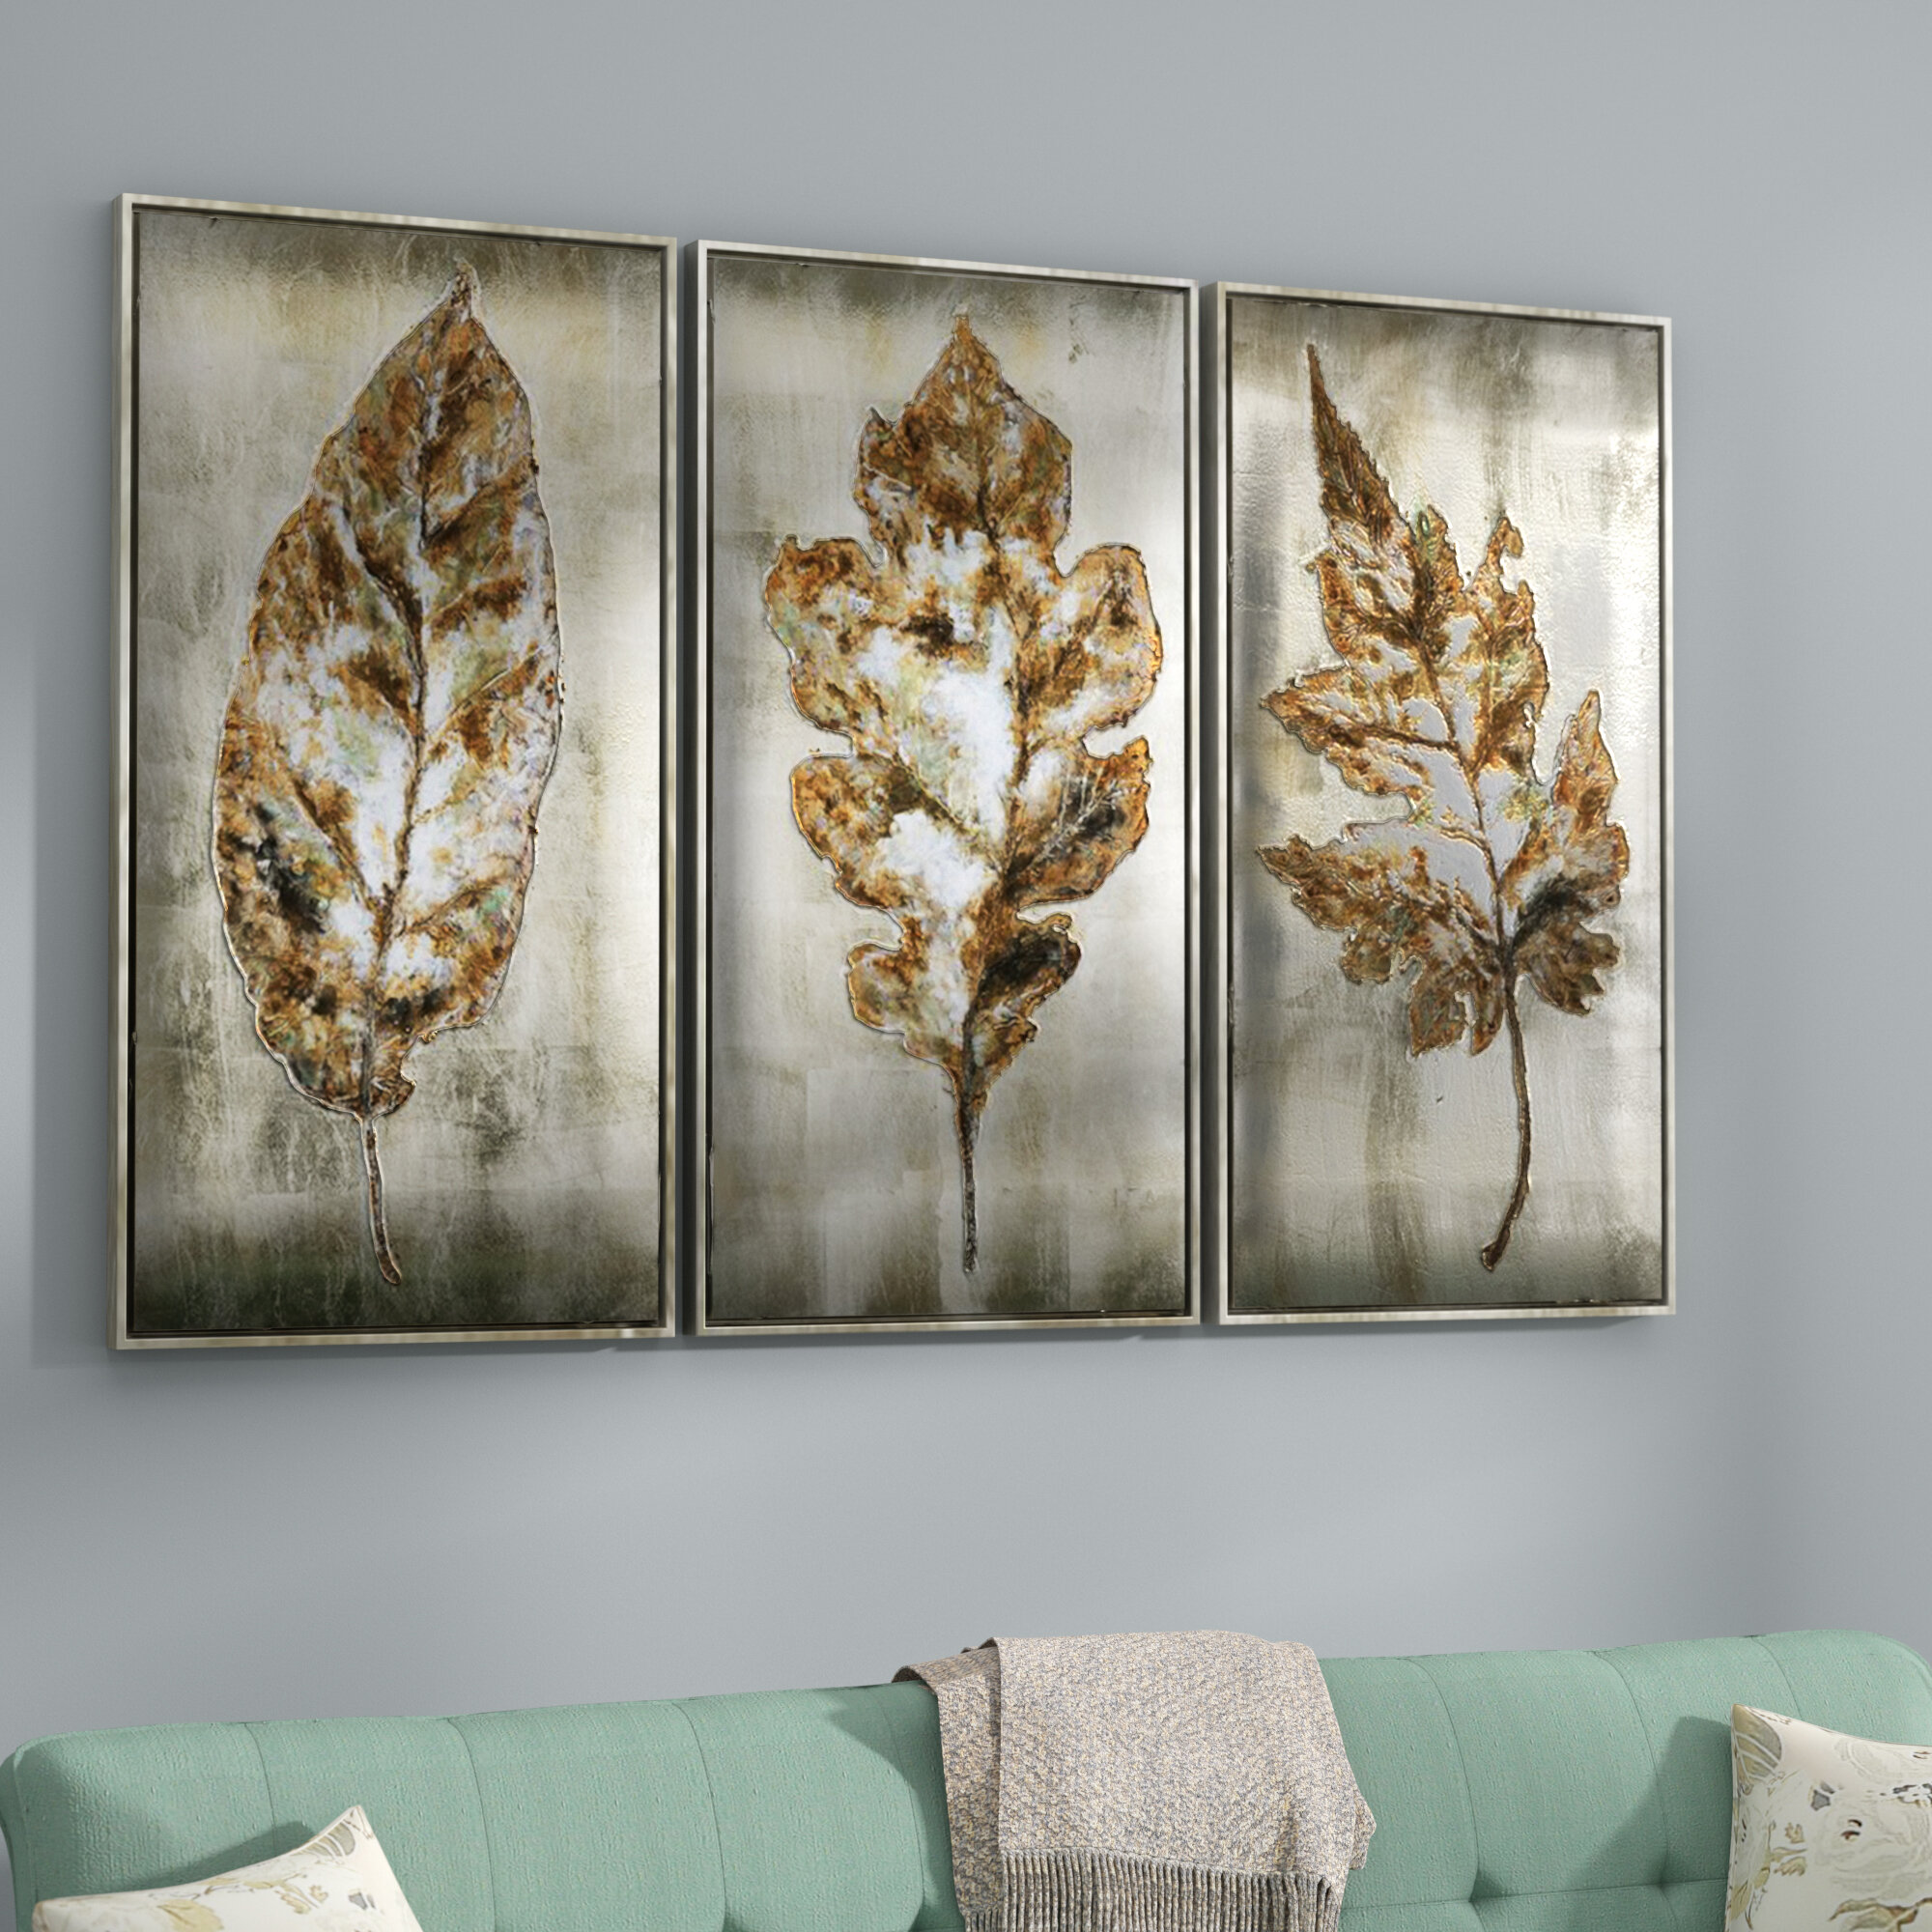 Darby home co leaves modern 3 piece framed painting set reviews wayfair